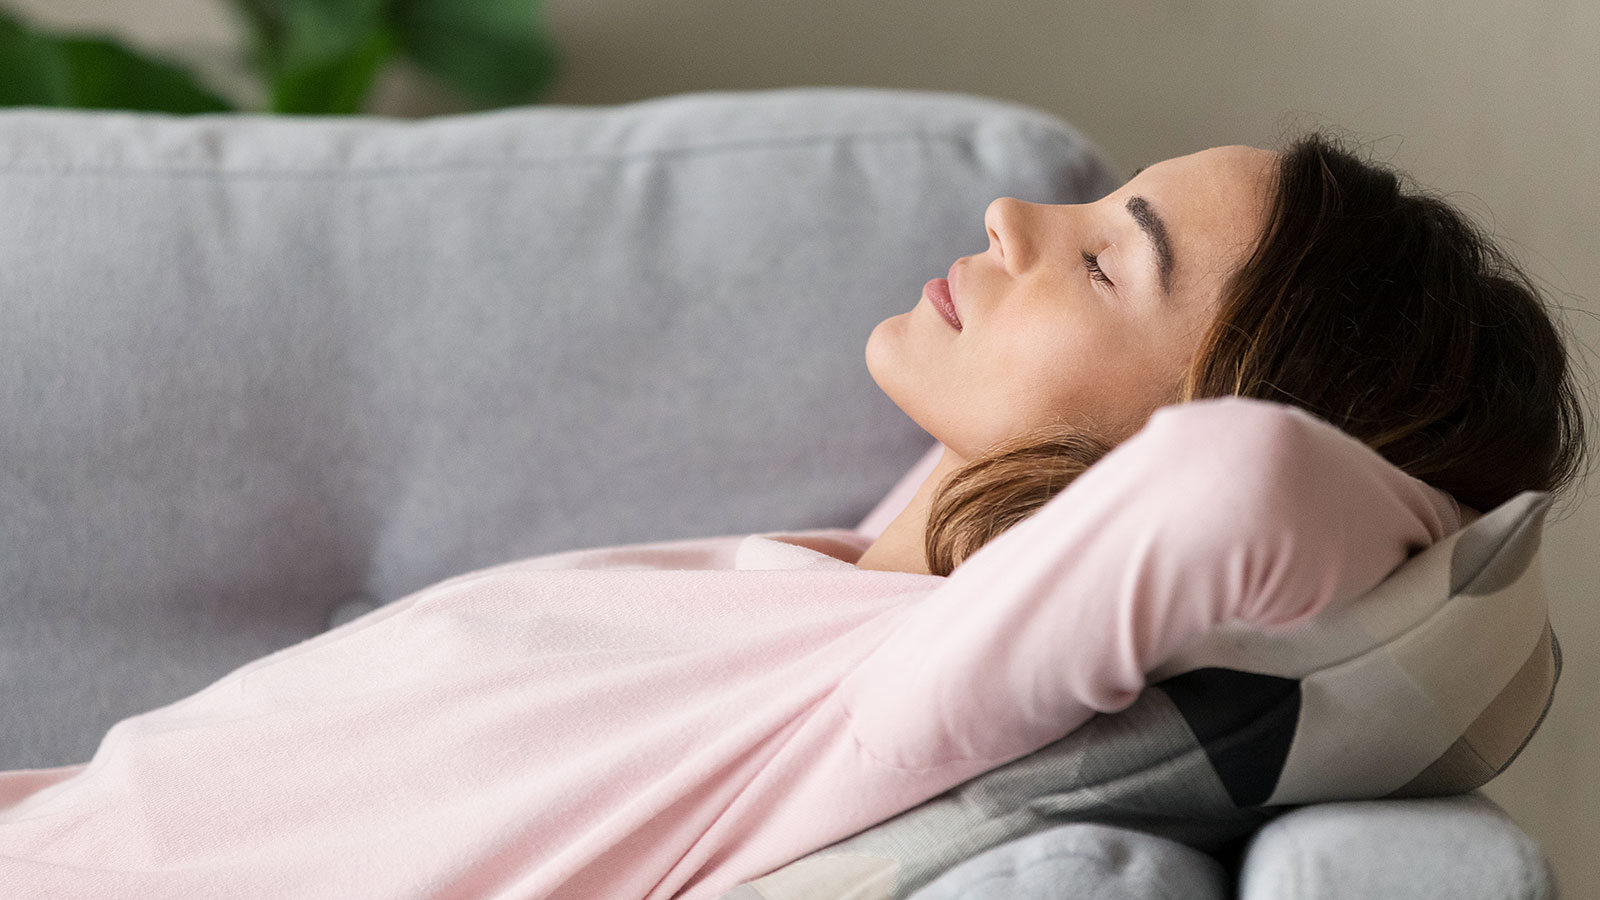 This study will make you think twice about ever napping again